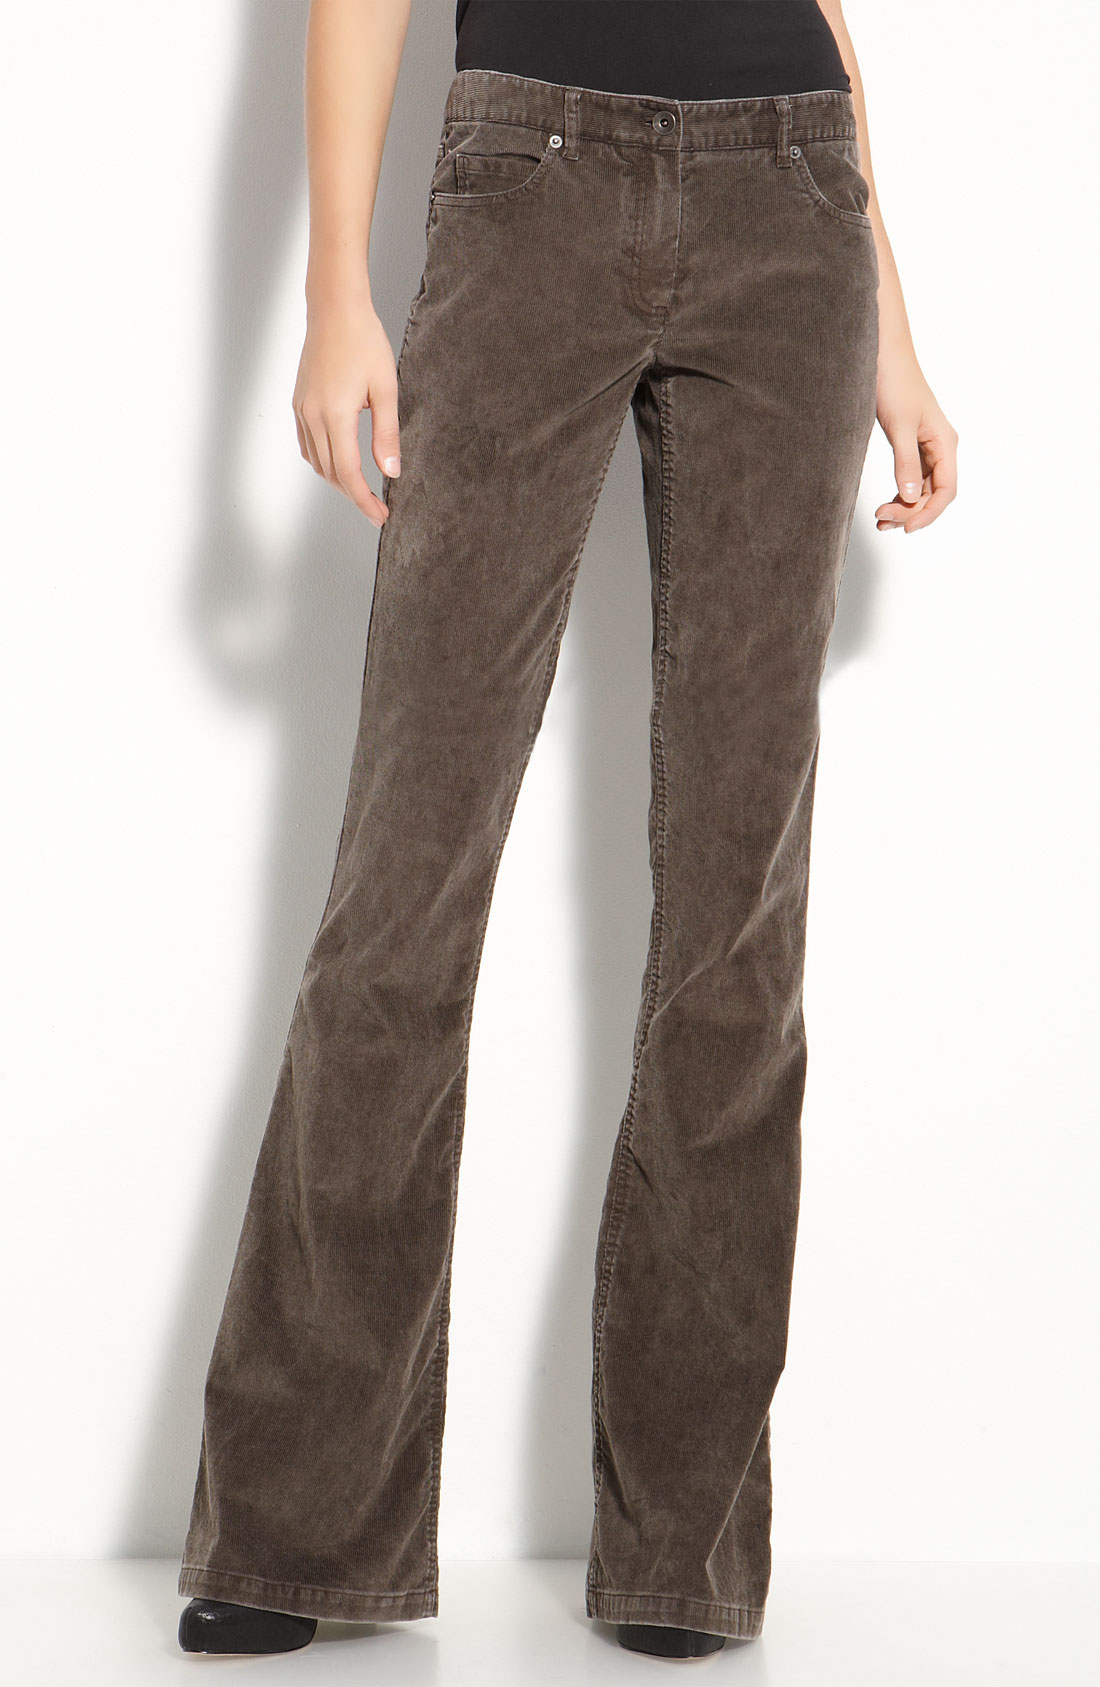 Find Flare Corduroy Pants for Women, Charcoal Corduroy Pants for Women and more at Macy's. Macy's Presents: Create a classic wardrobe vibe with flare corduroy pants. Flare pants pair well with stilettos or sling back heels for a look to flaunt day or night. Patterned shirts, tunics and other tops match the retro feel of corduroy pants.